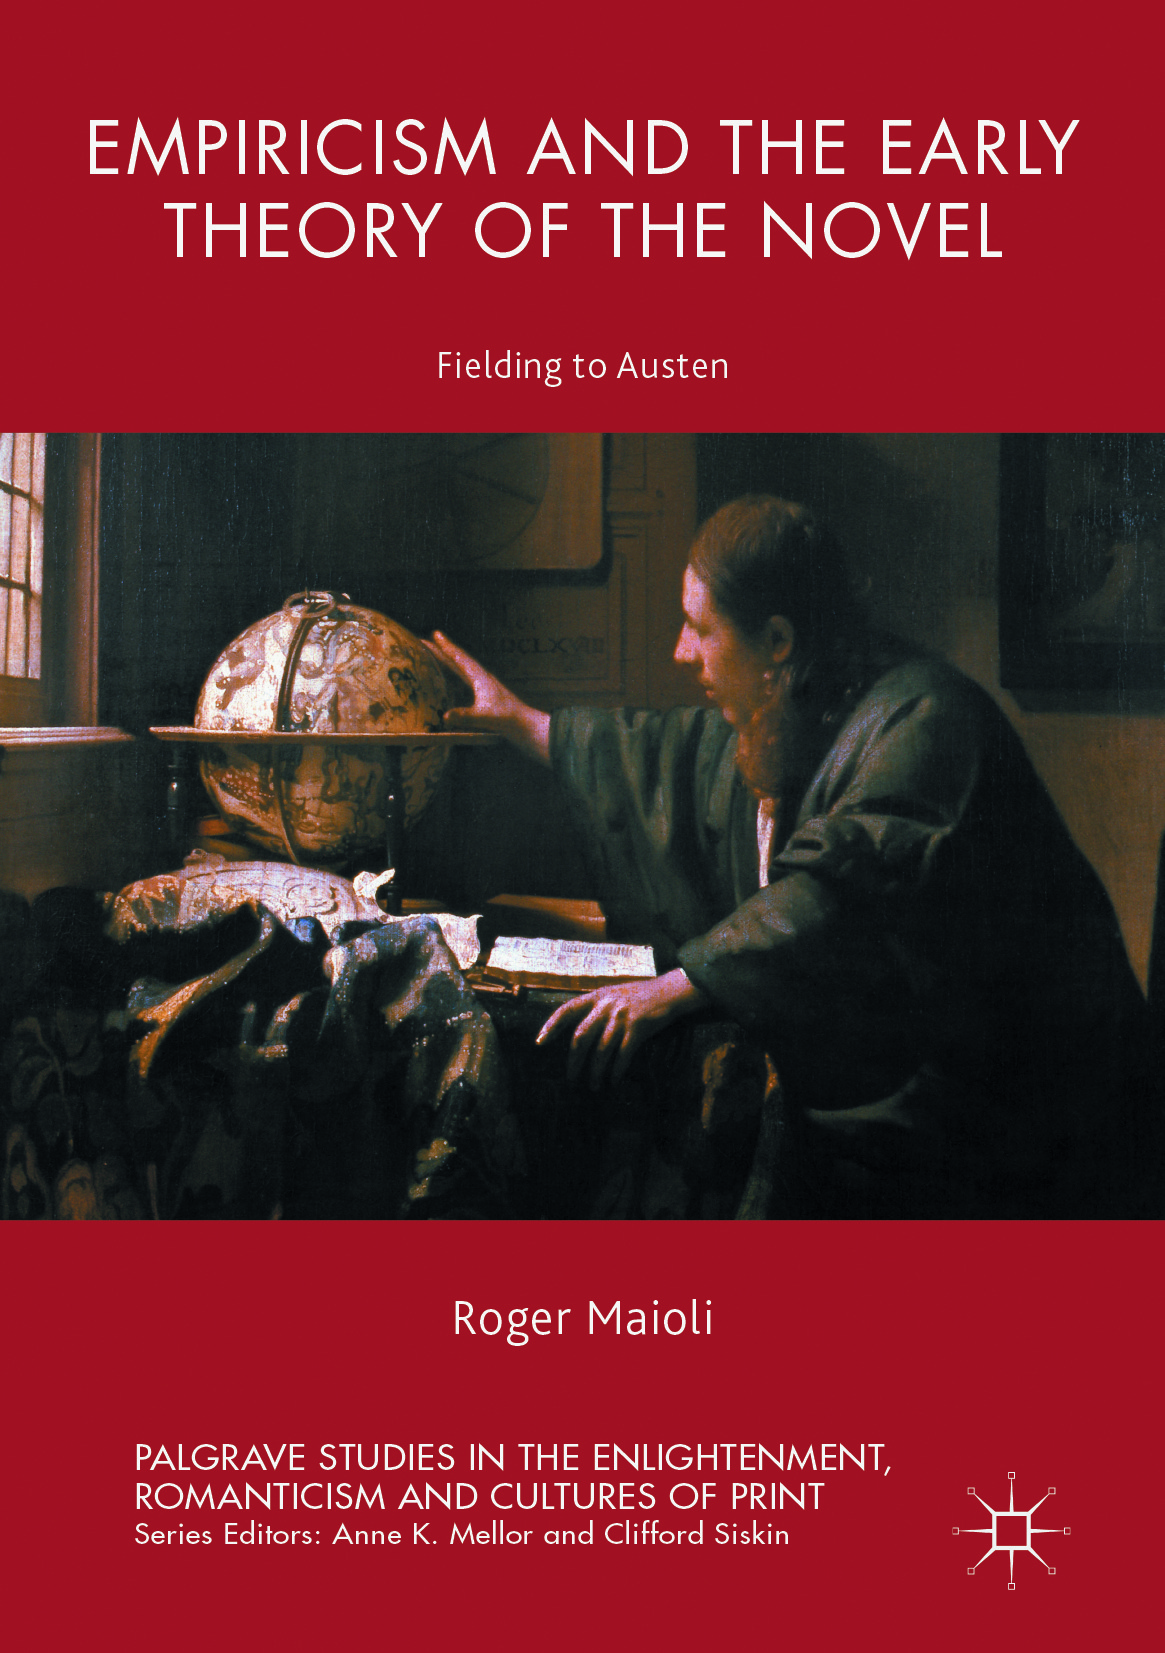 Maioli, Roger - Empiricism and the Early Theory of the Novel, ebook